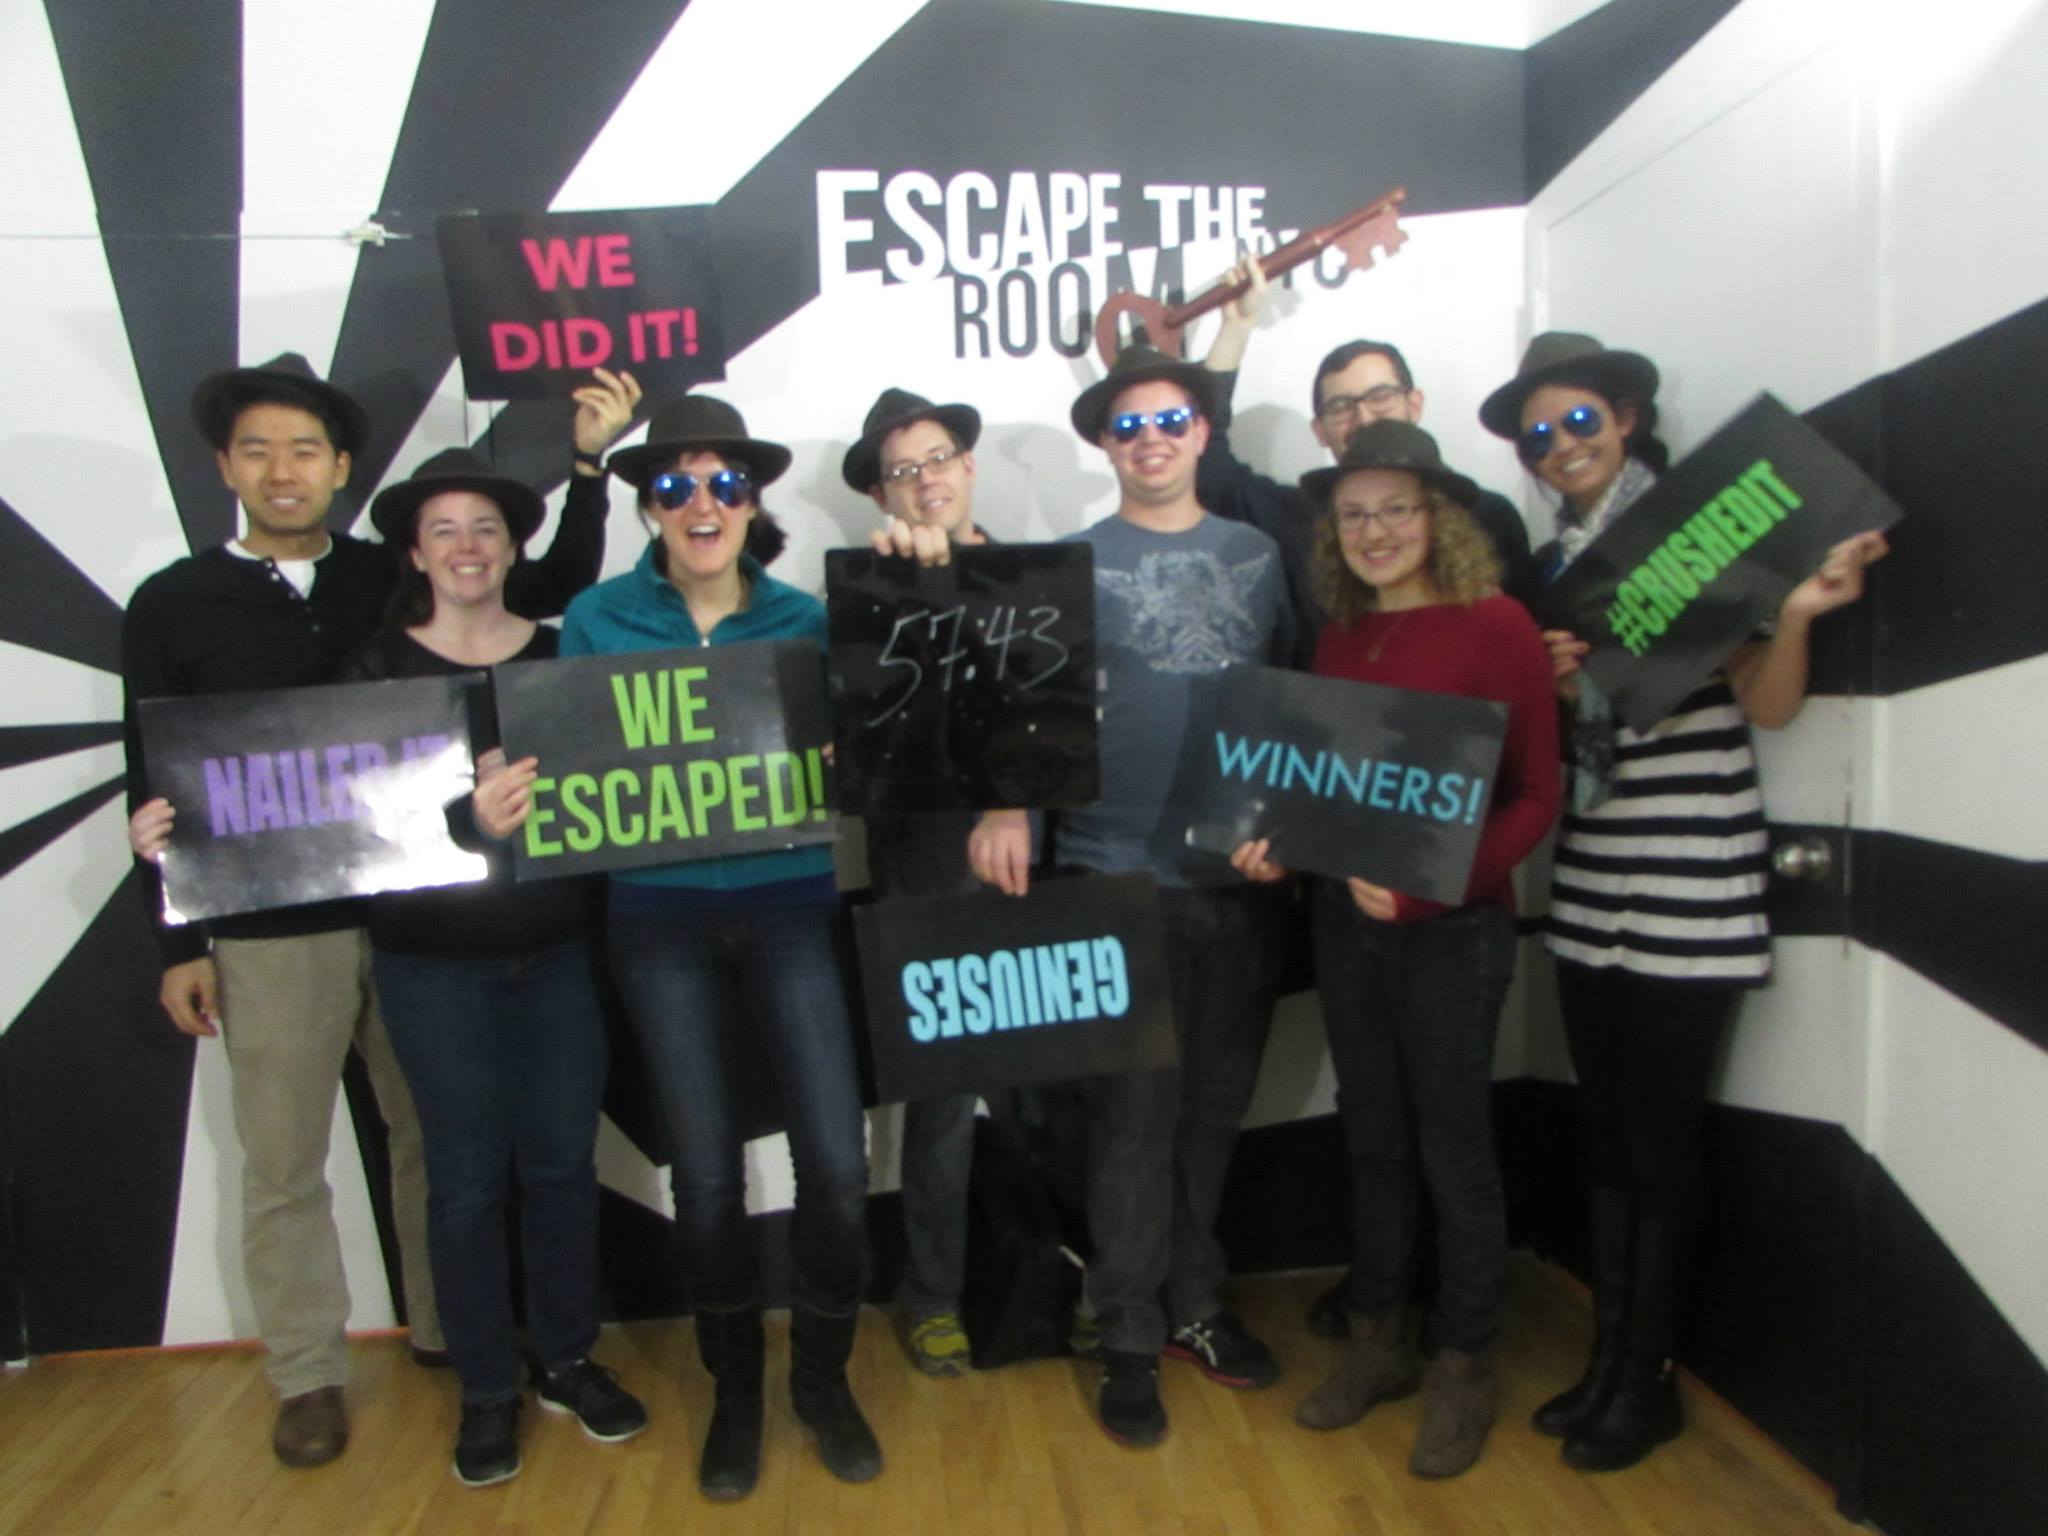 Escape the Room NYC: The Agency [Review] - Room Escape Artist